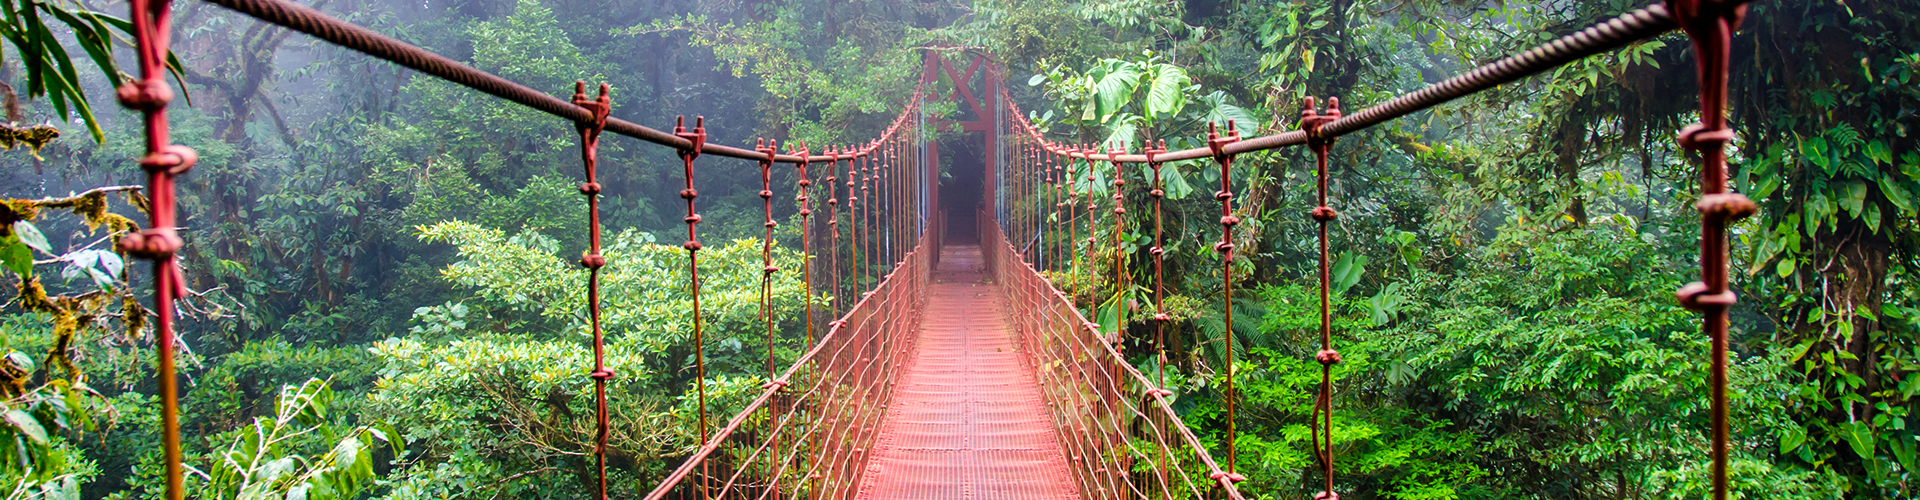 Costa Rica: Tropical Ecology